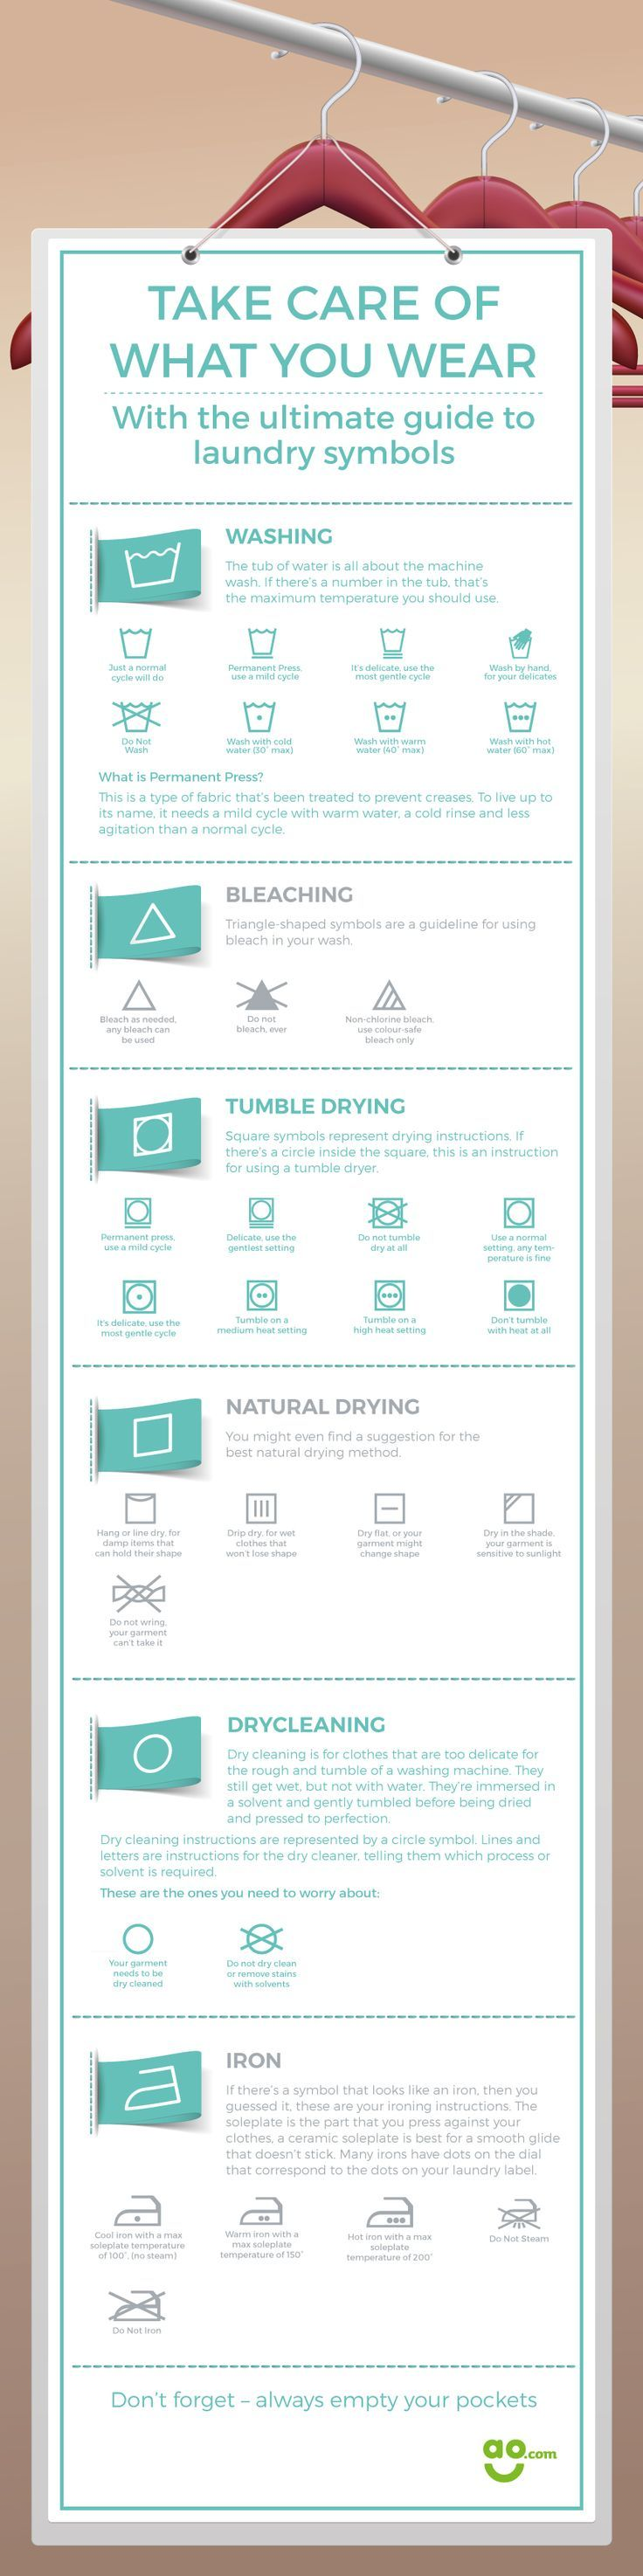 Take Care of What You Wear with the Ultimate Guide to Laundry Symbols